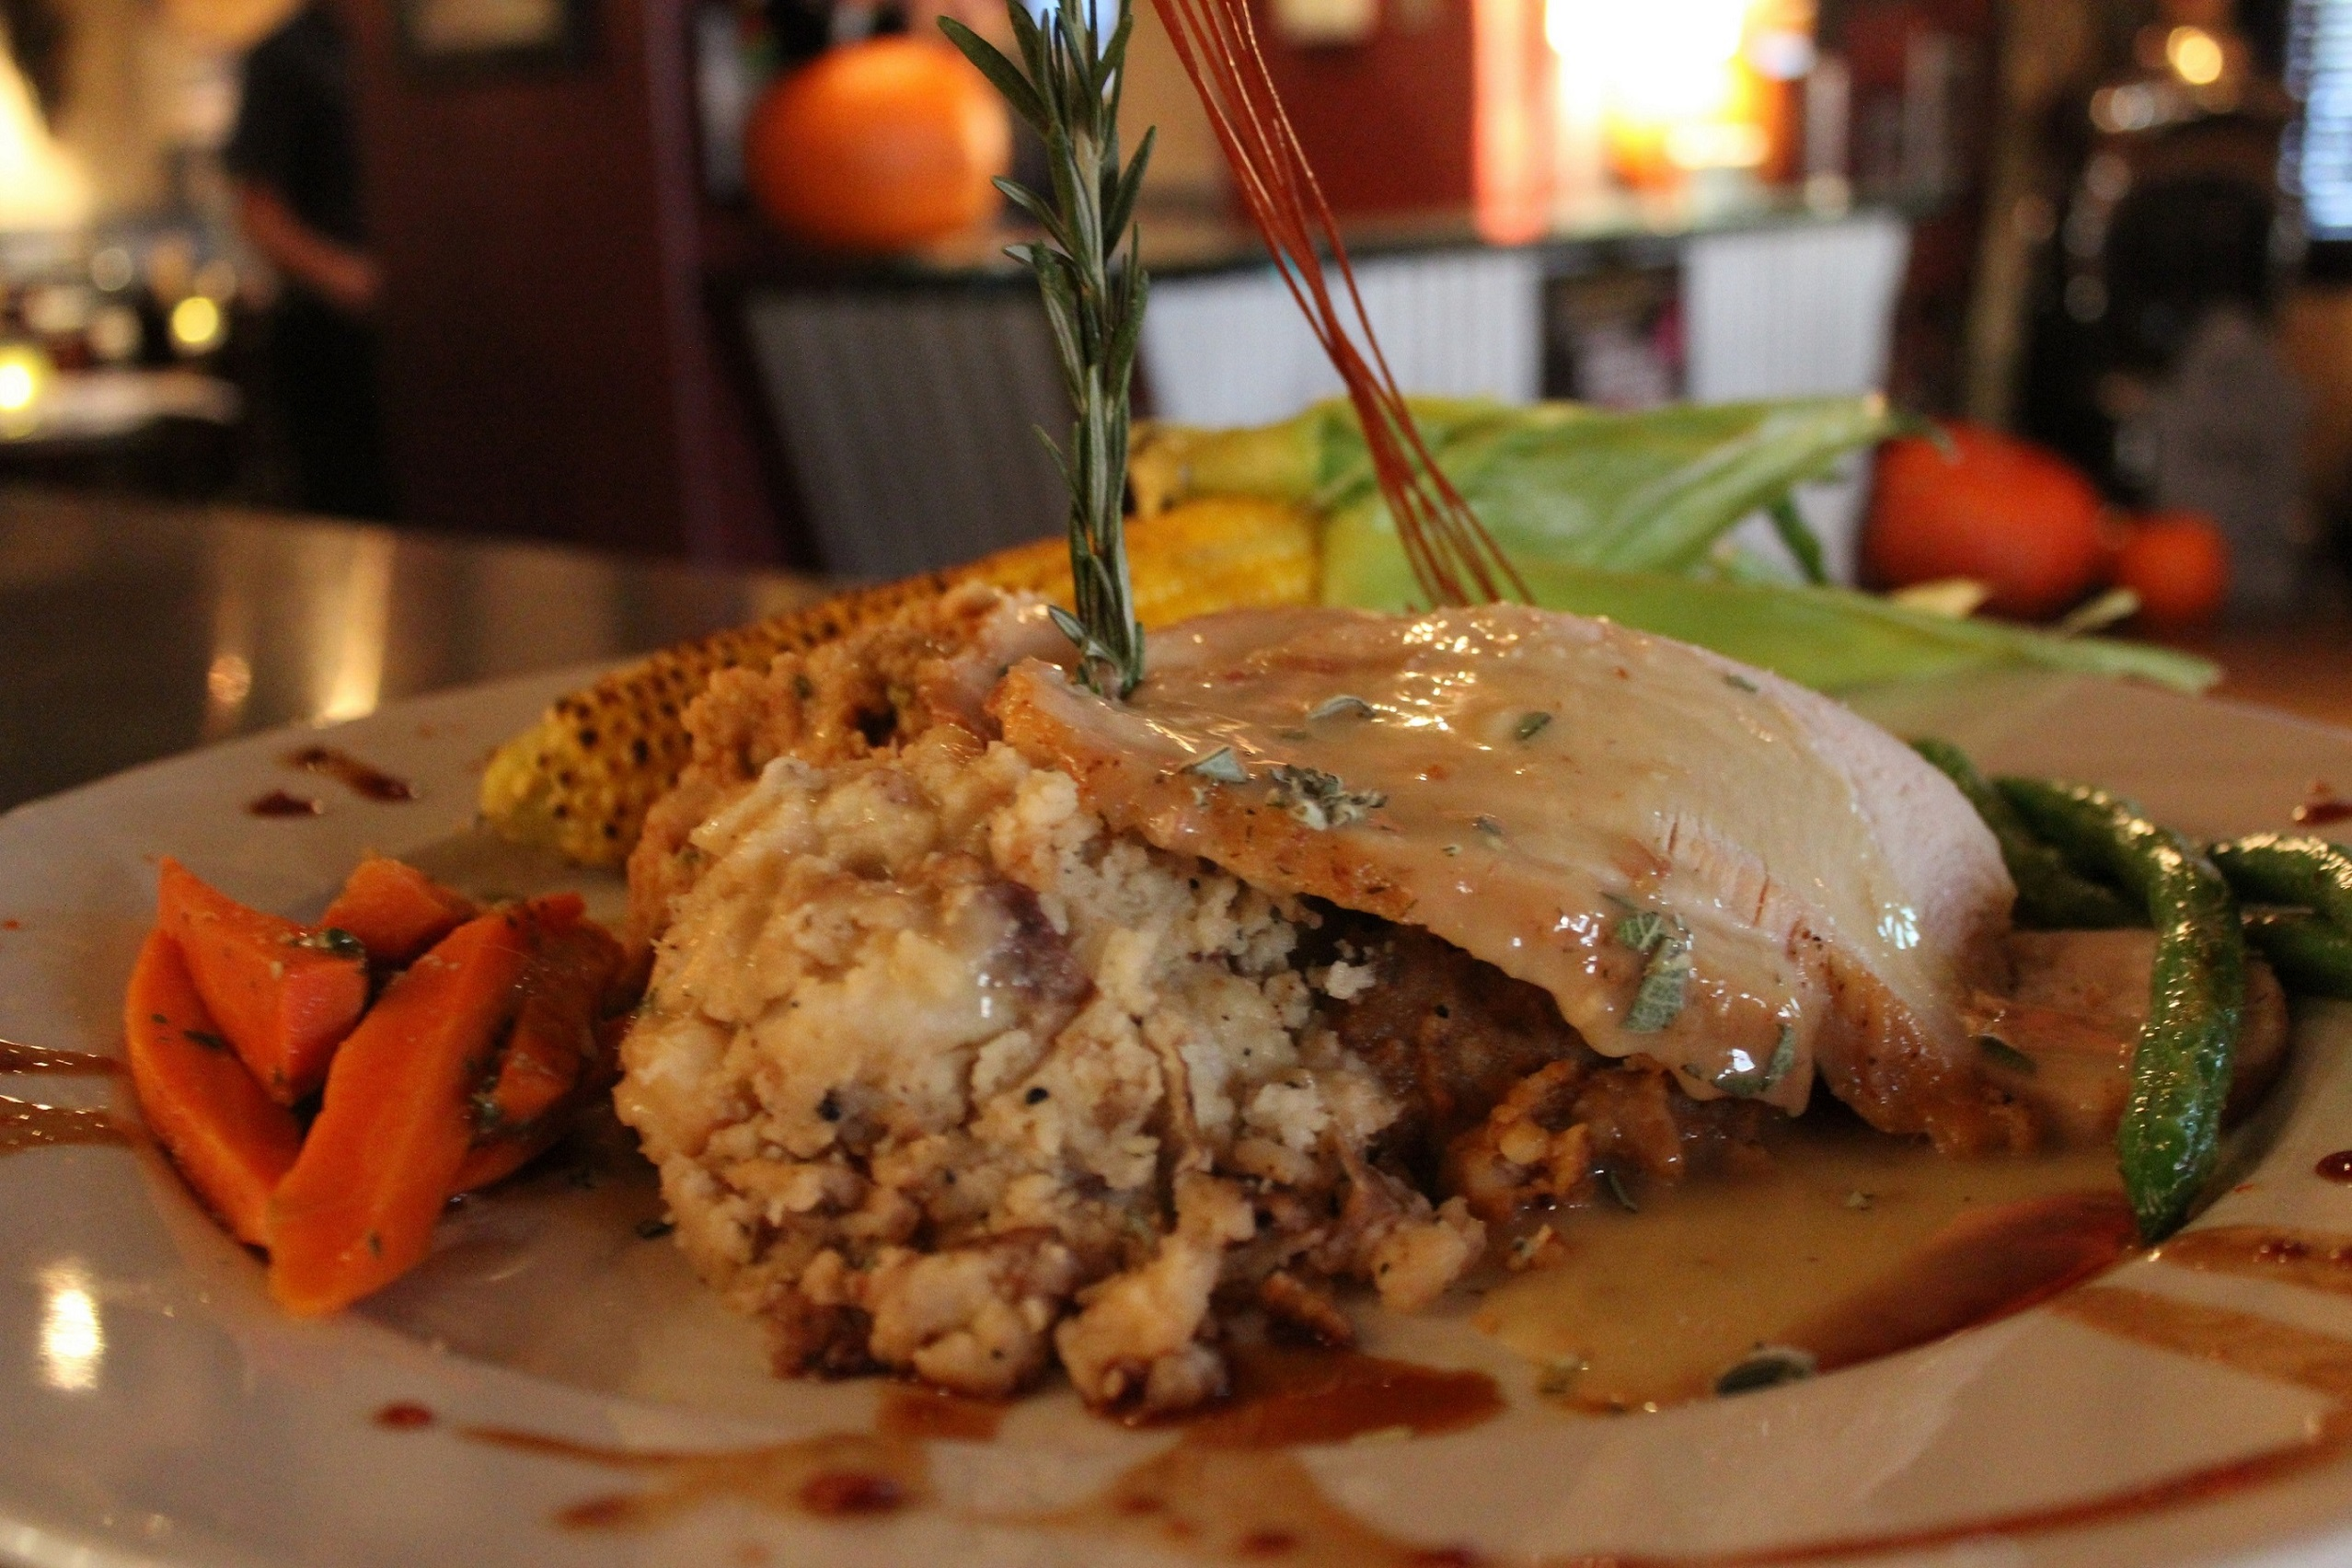 The roast turkey breast dinner, photo courtesy of Hash House A Go Go